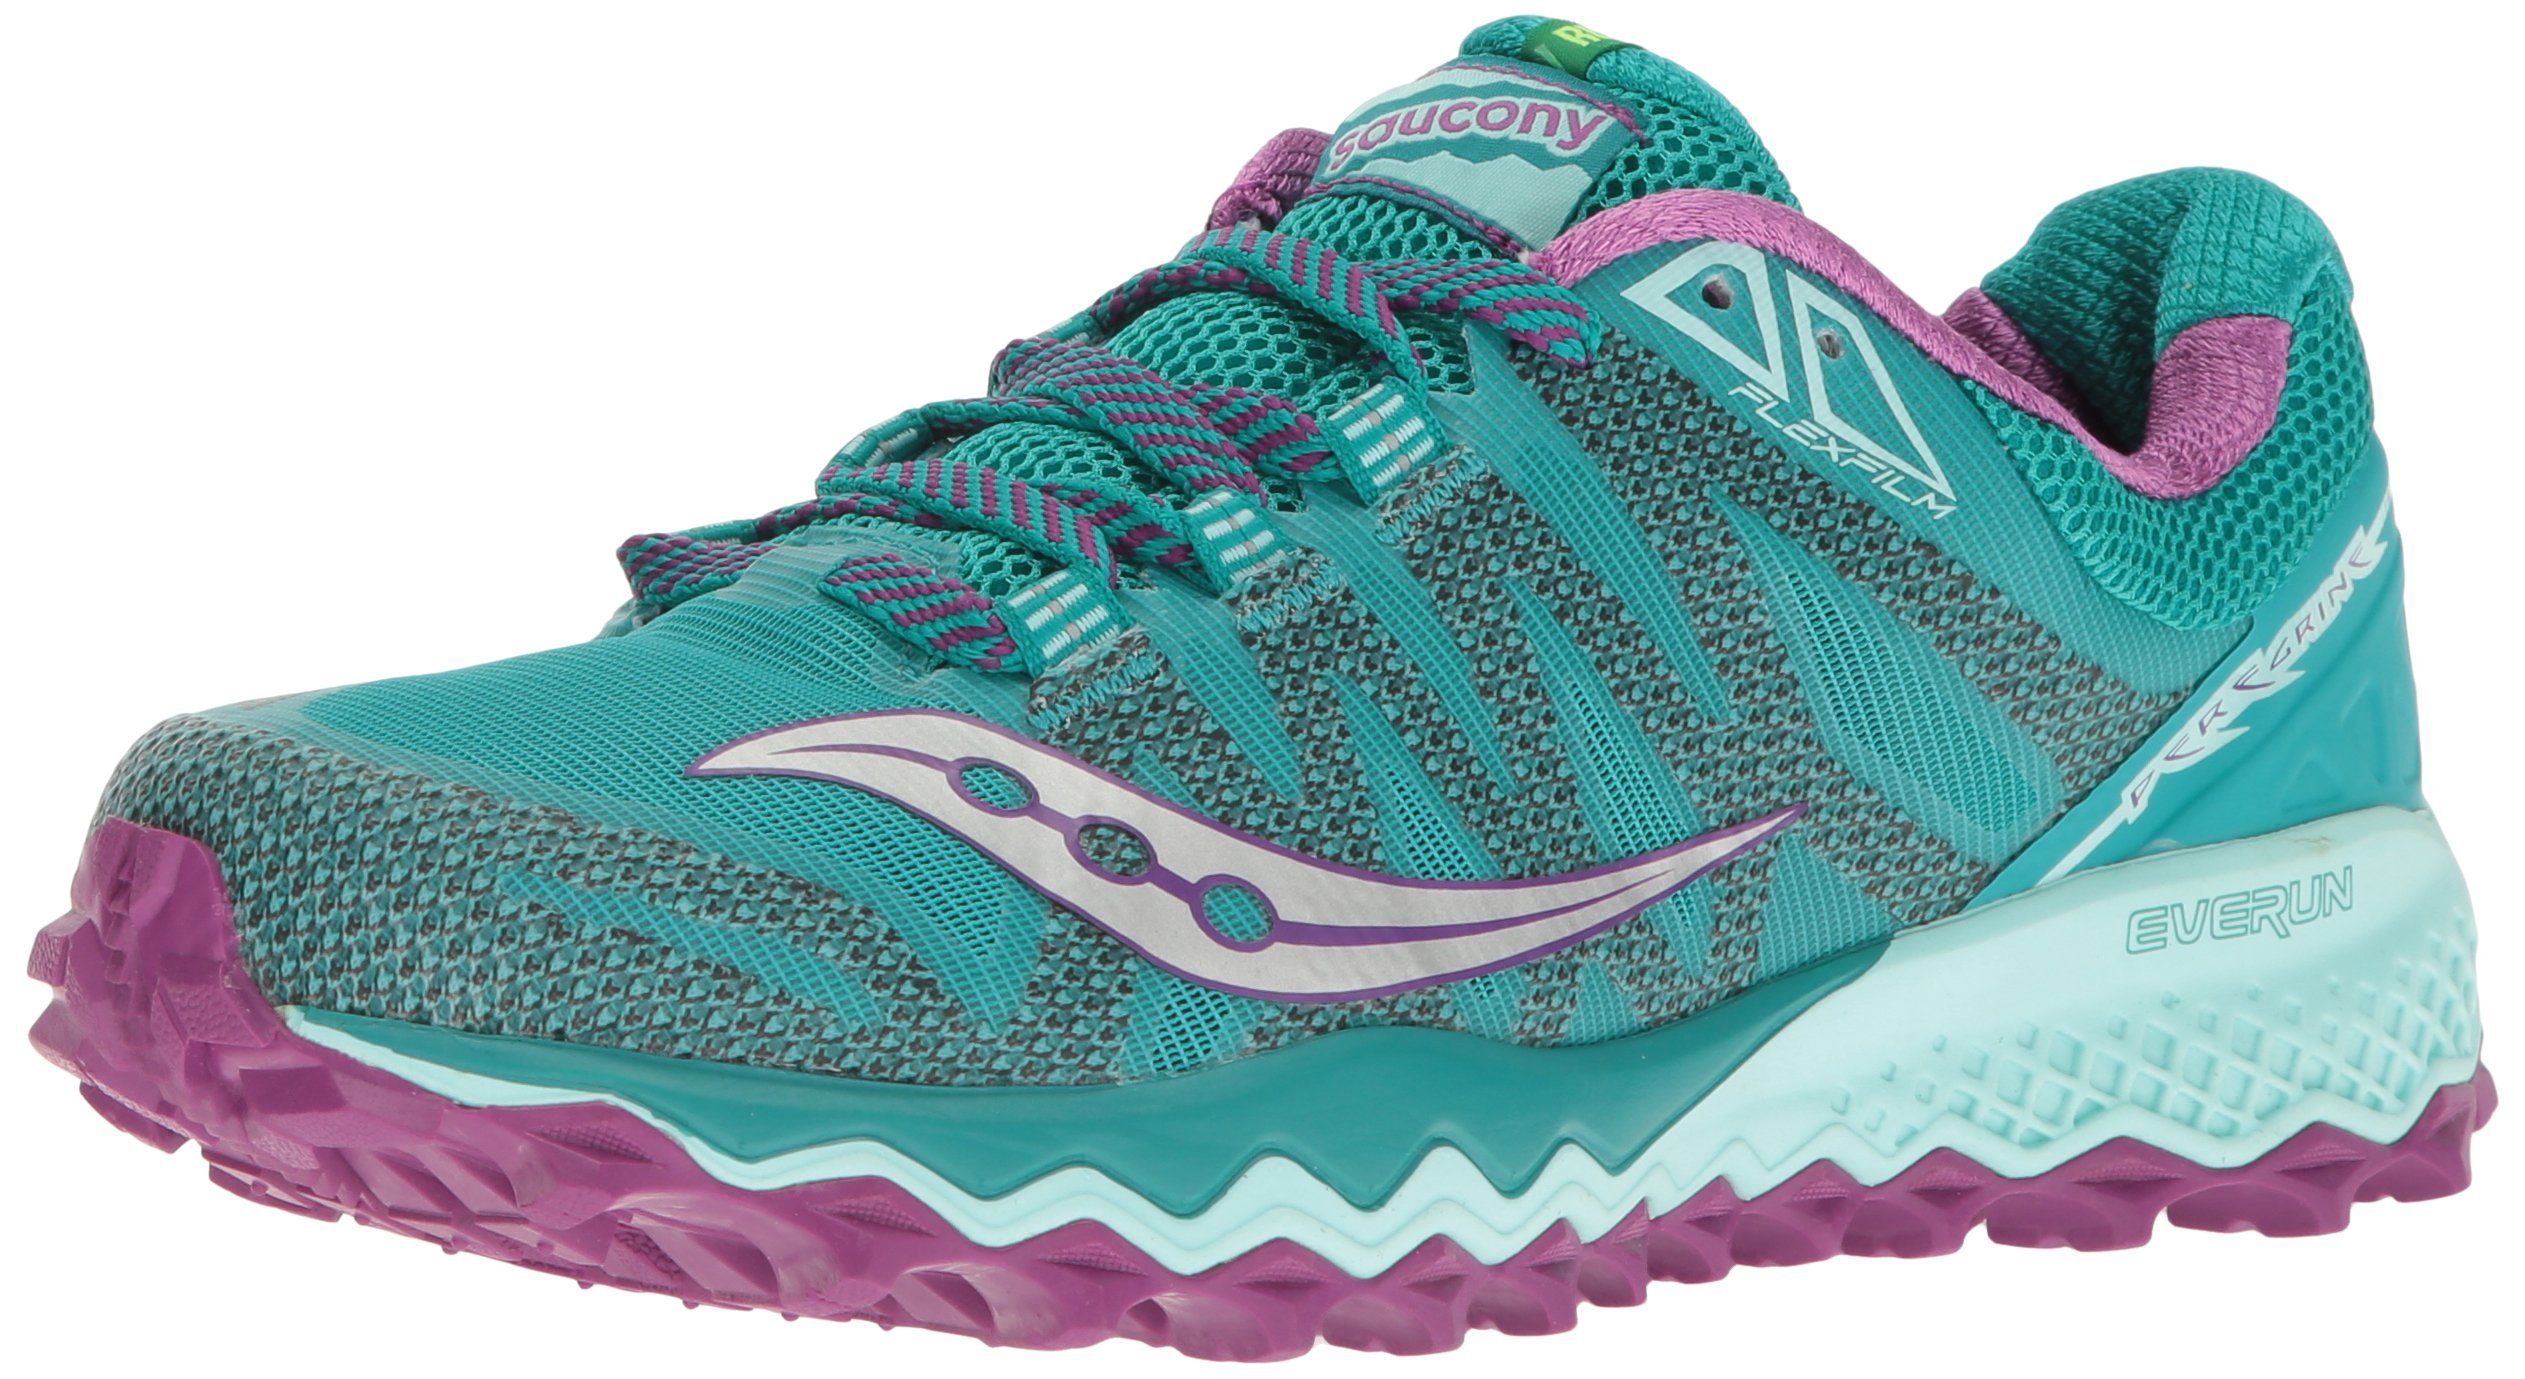 Saucony Women's Peregrine 7 Trail Runner, Teal/Purple/Citron, 8.5 M US